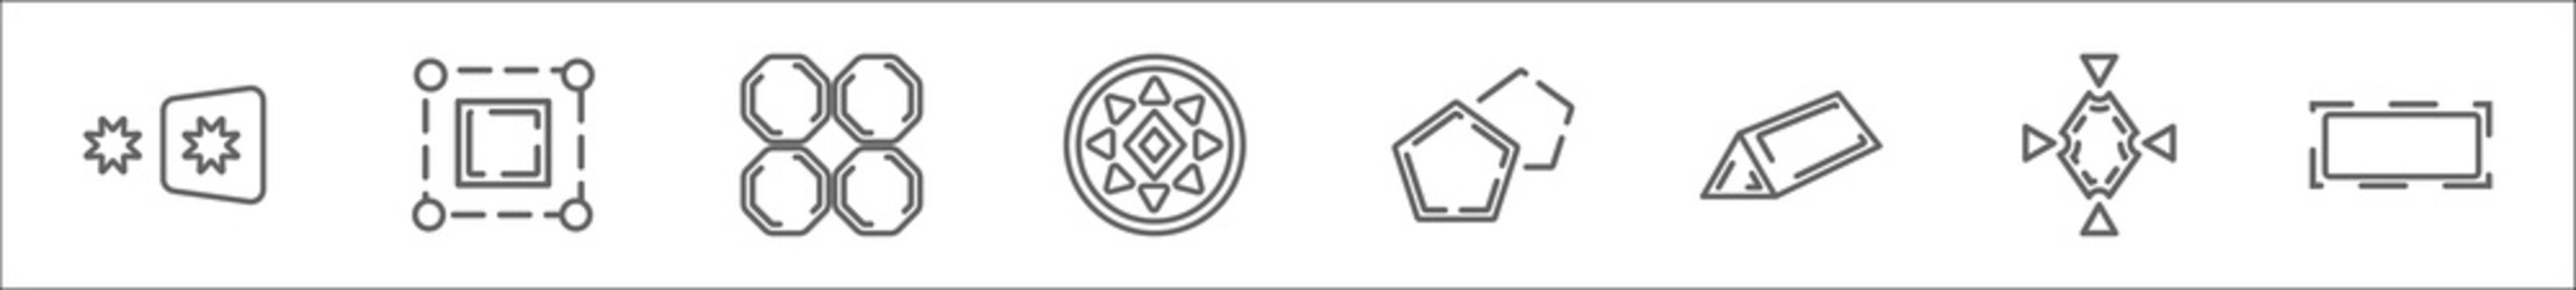 outline set of geometry line icons. linear vector icons such as reflection, bounding box, tile, sri yantra, polygon, prism, synergy, rectangle